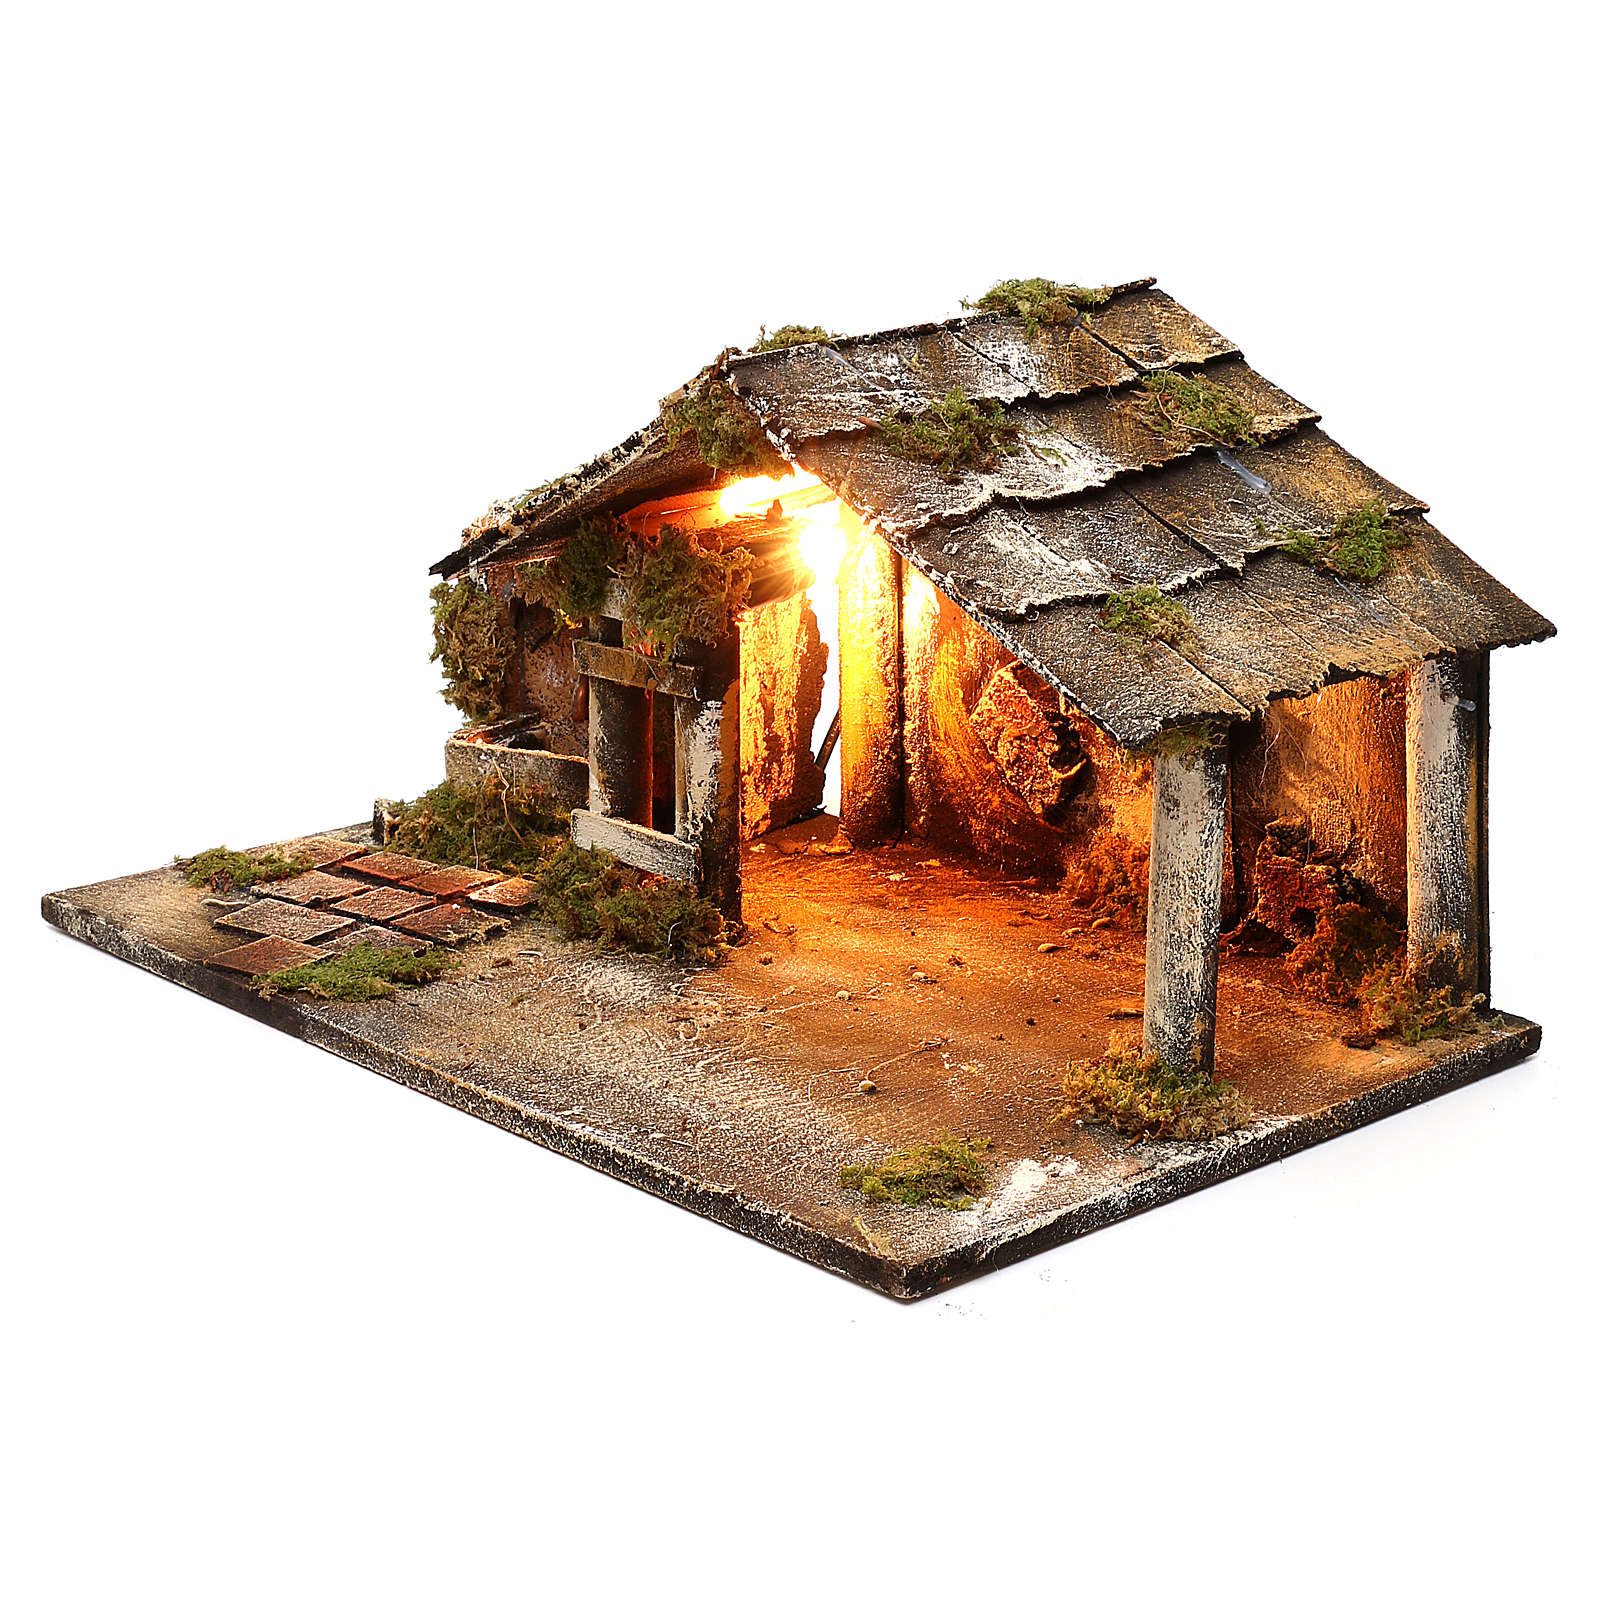 Hut with fountain and light for Neapolitan Nativity Scene 25x45x30 cm 4